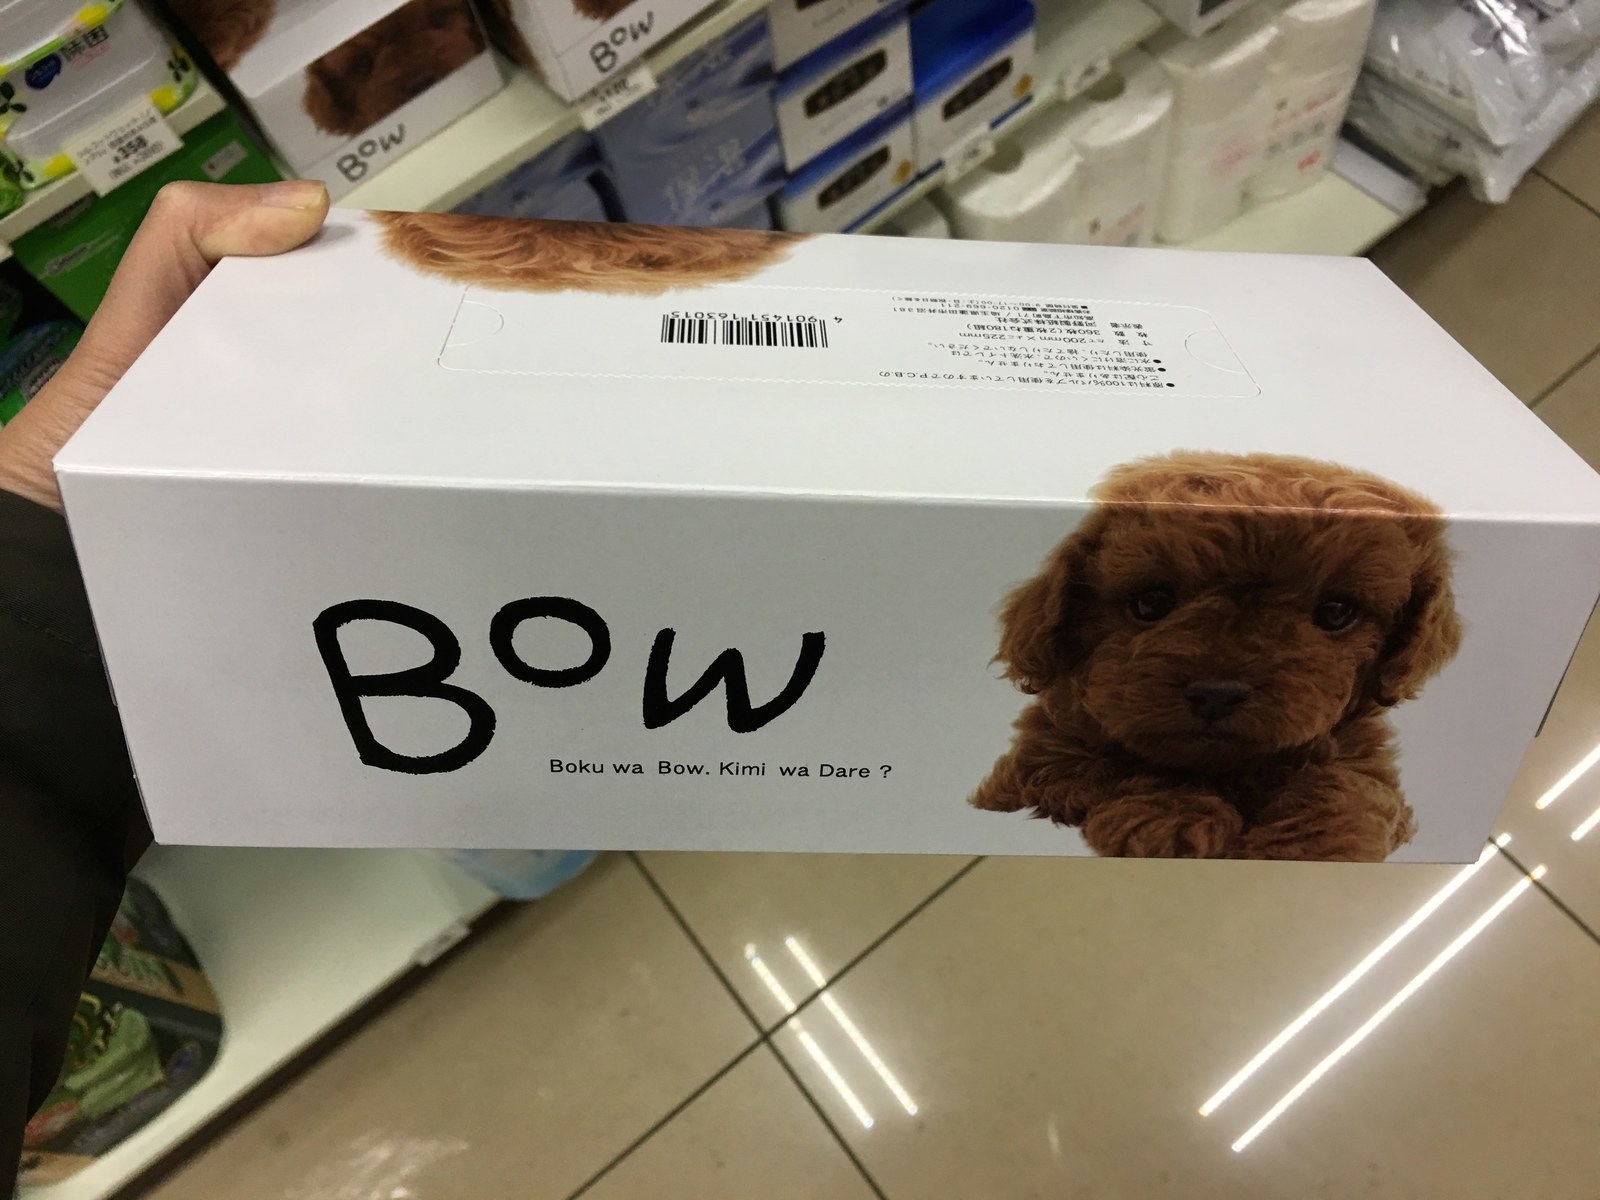 it says bow and has a cute picture of a dog